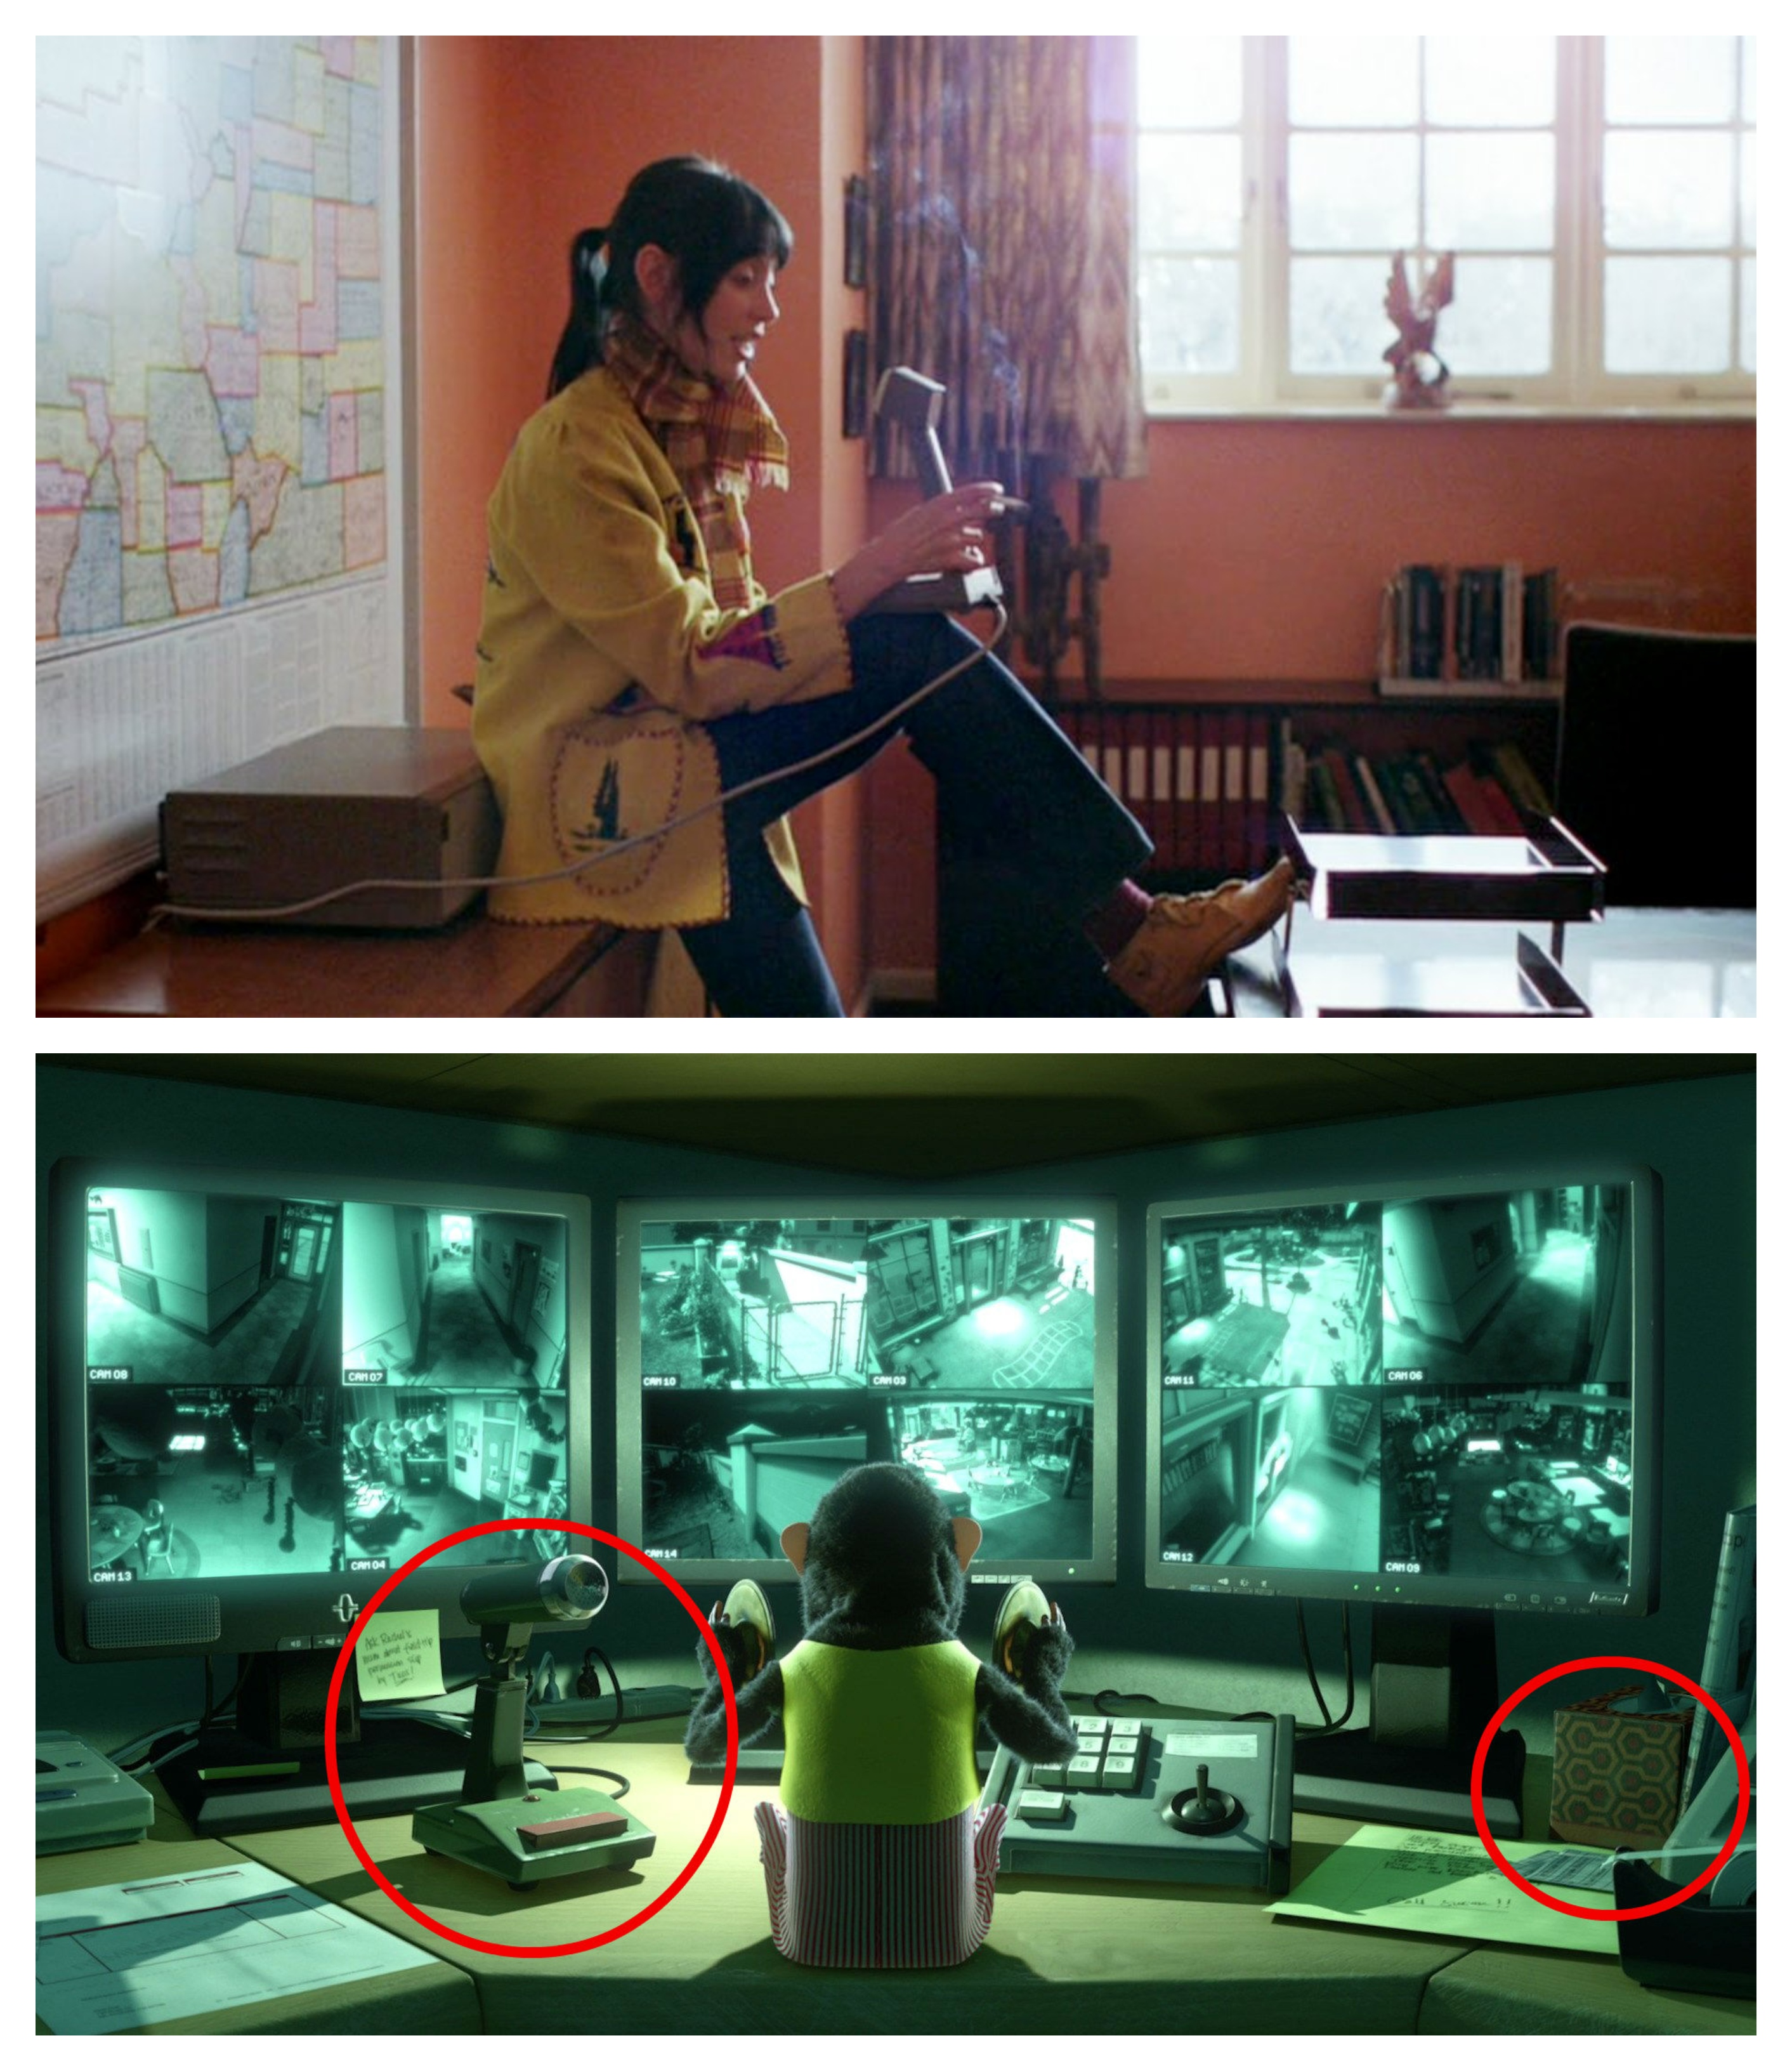 The Shining in Toy Story 3